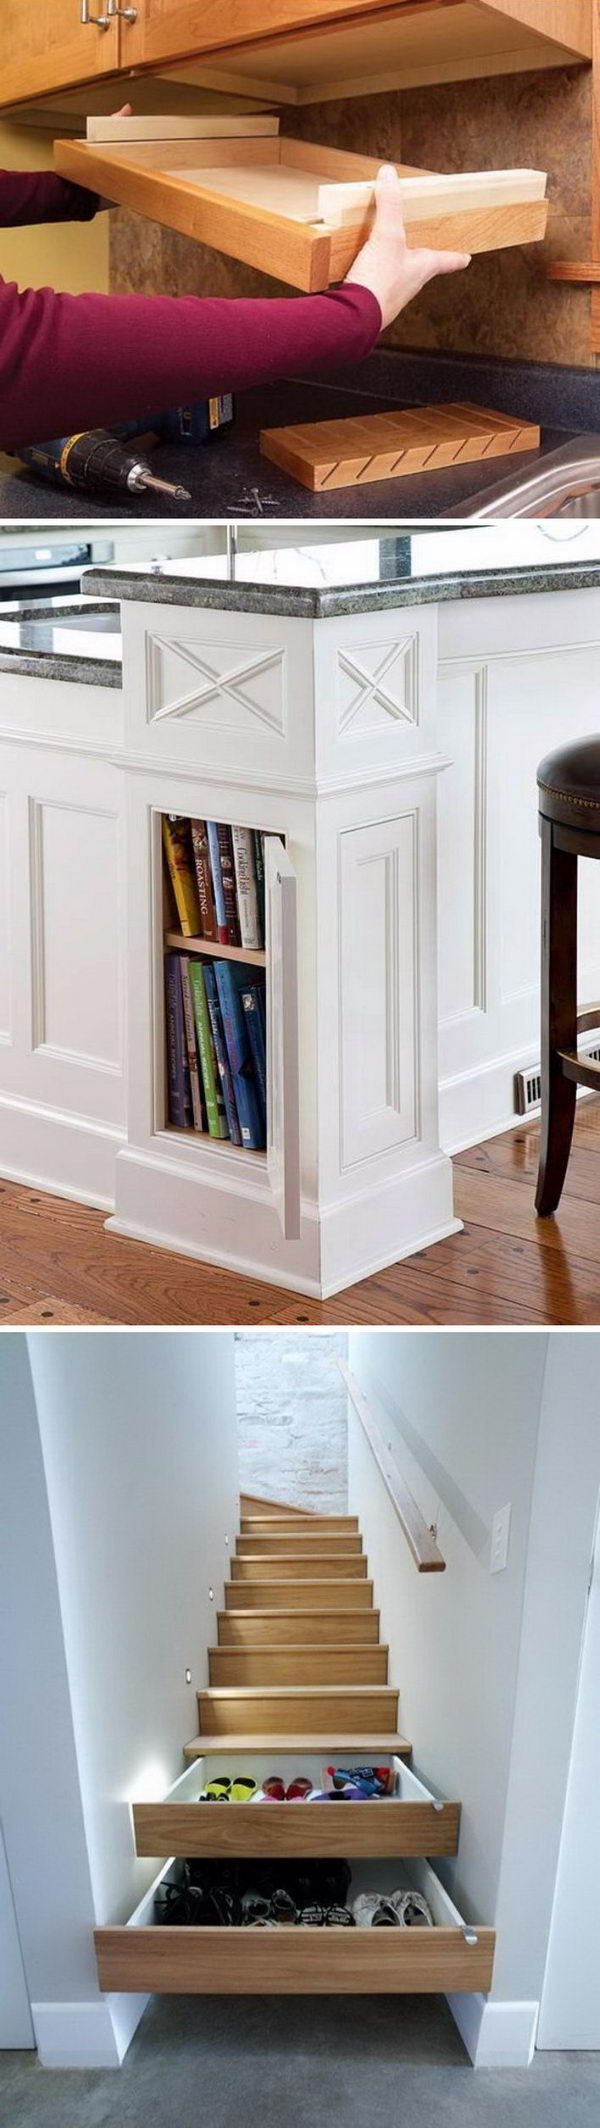 20 clever hidden storage ideas perfect for any home for Clever hidden storage